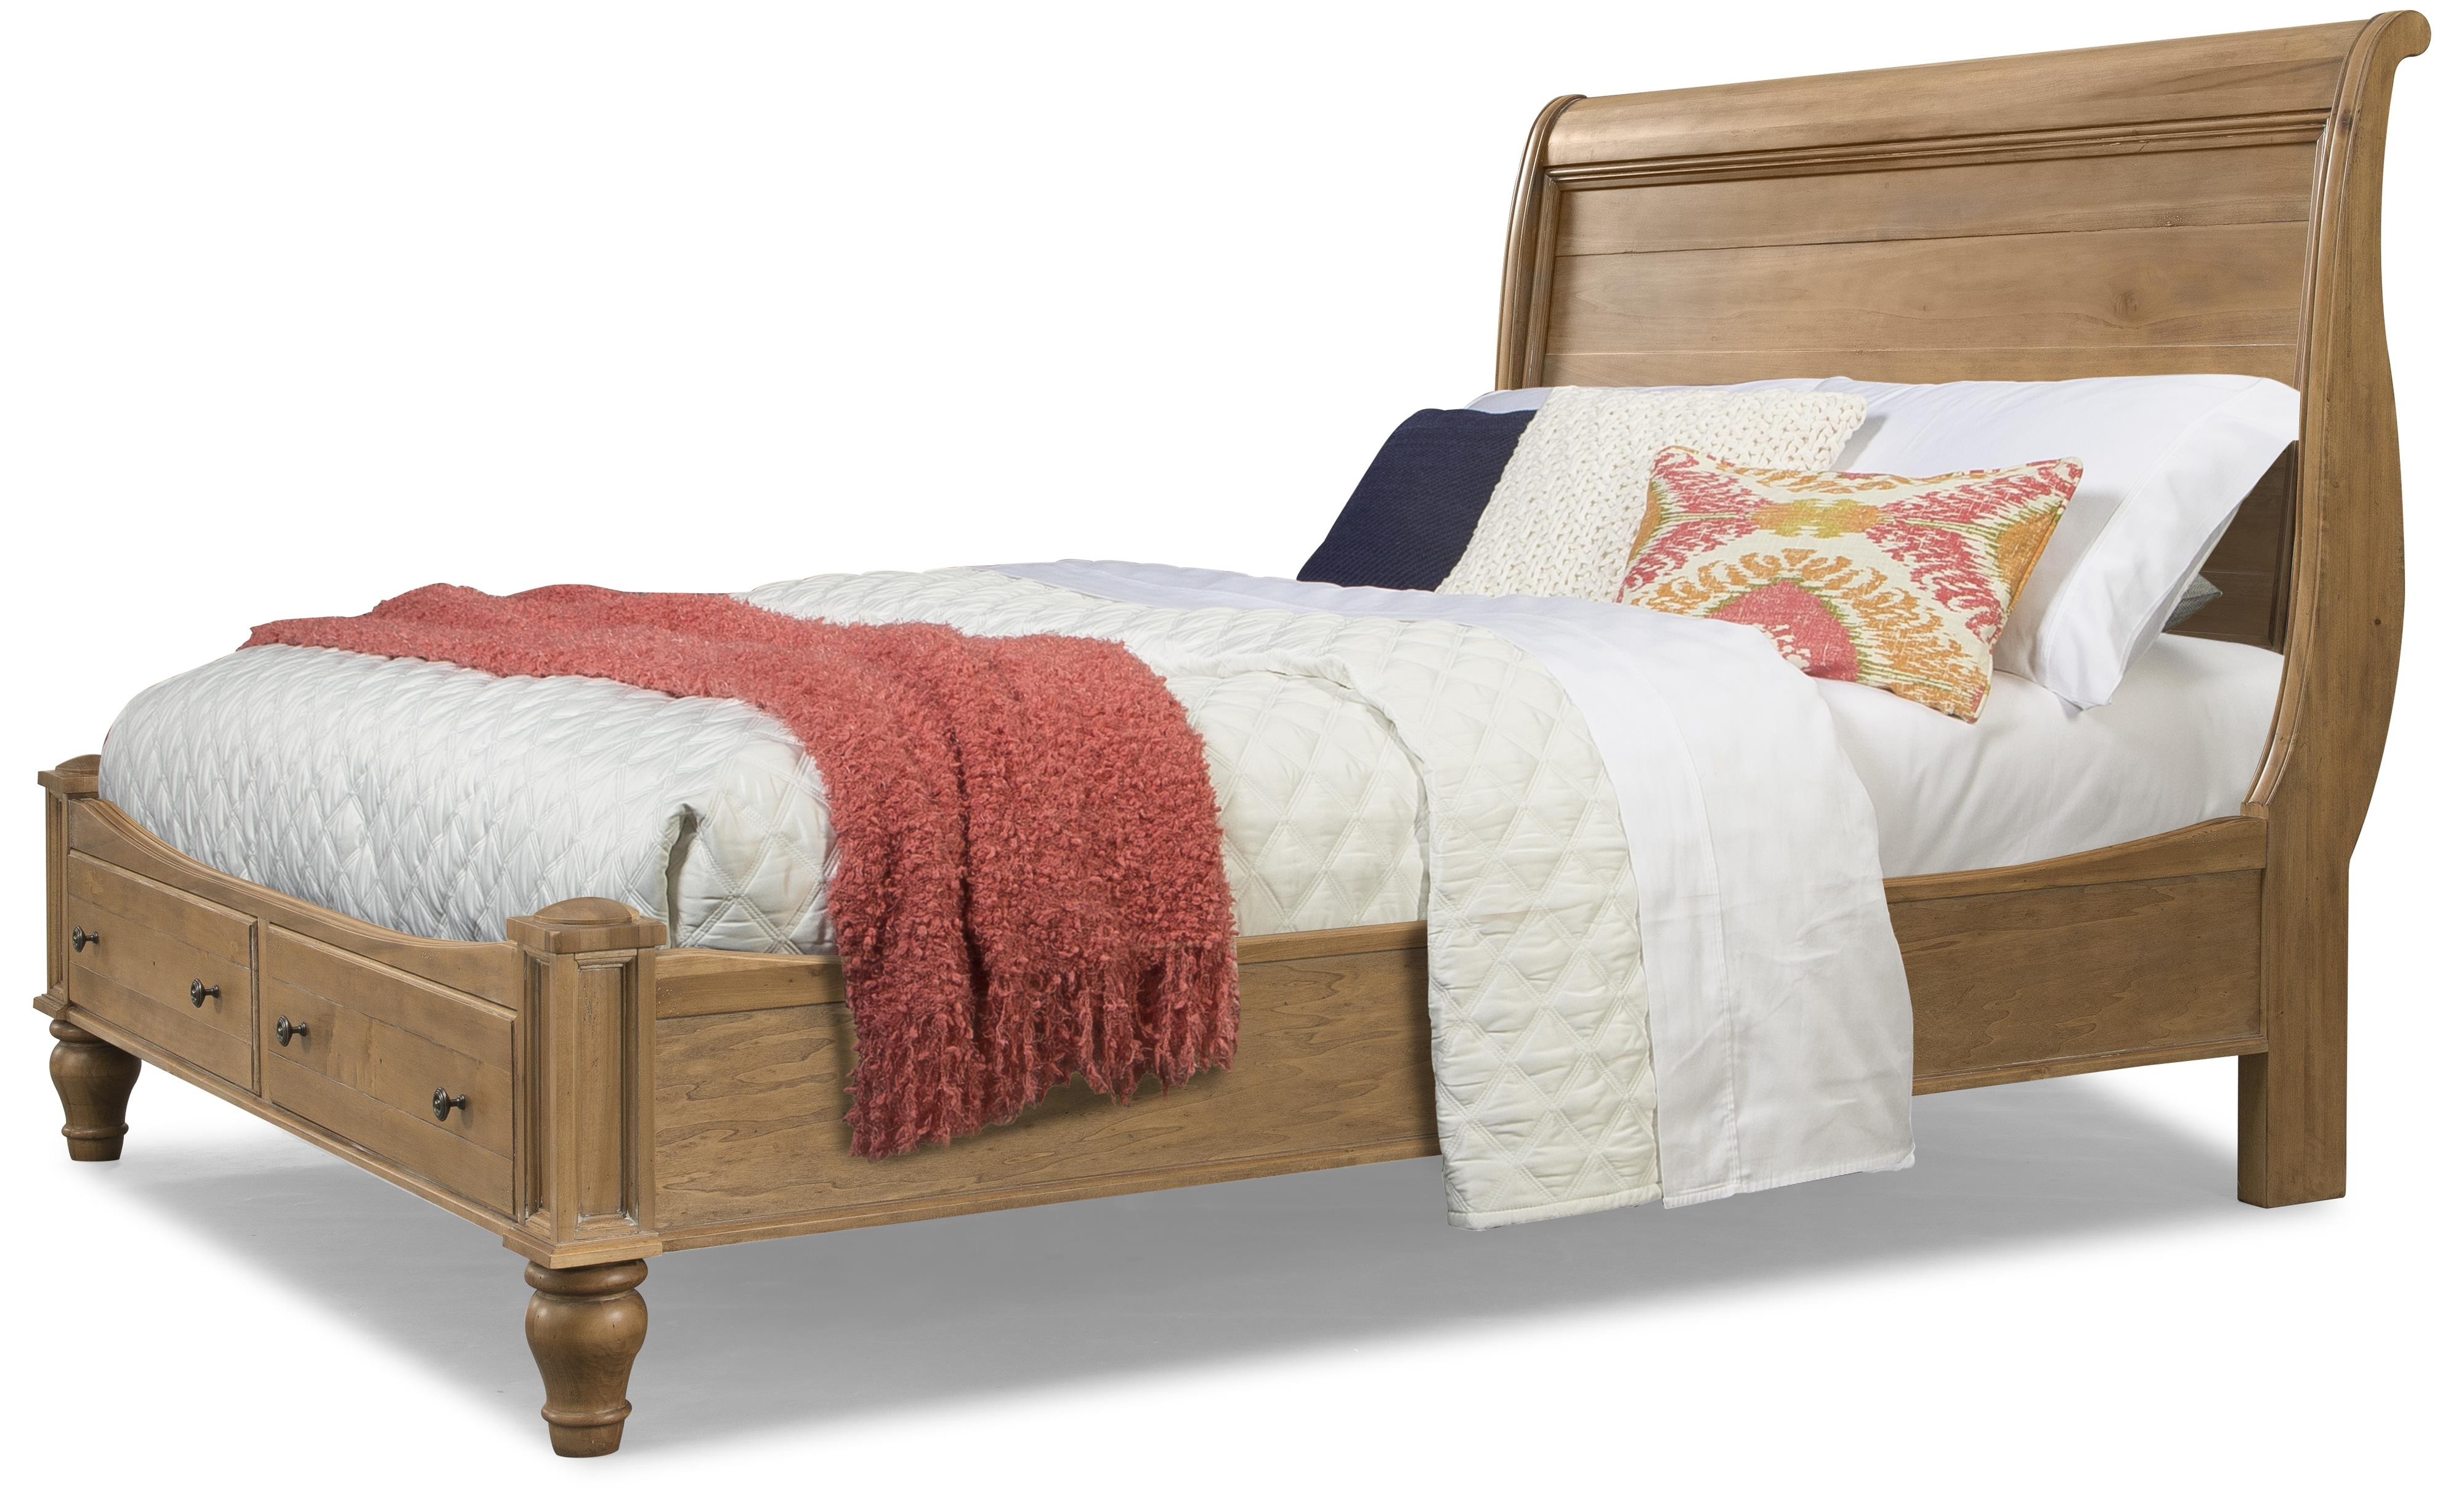 Cresent Fine Furniture Cottage King Natural Sleigh Bed - Item Number: 201-232KH+KF+KR